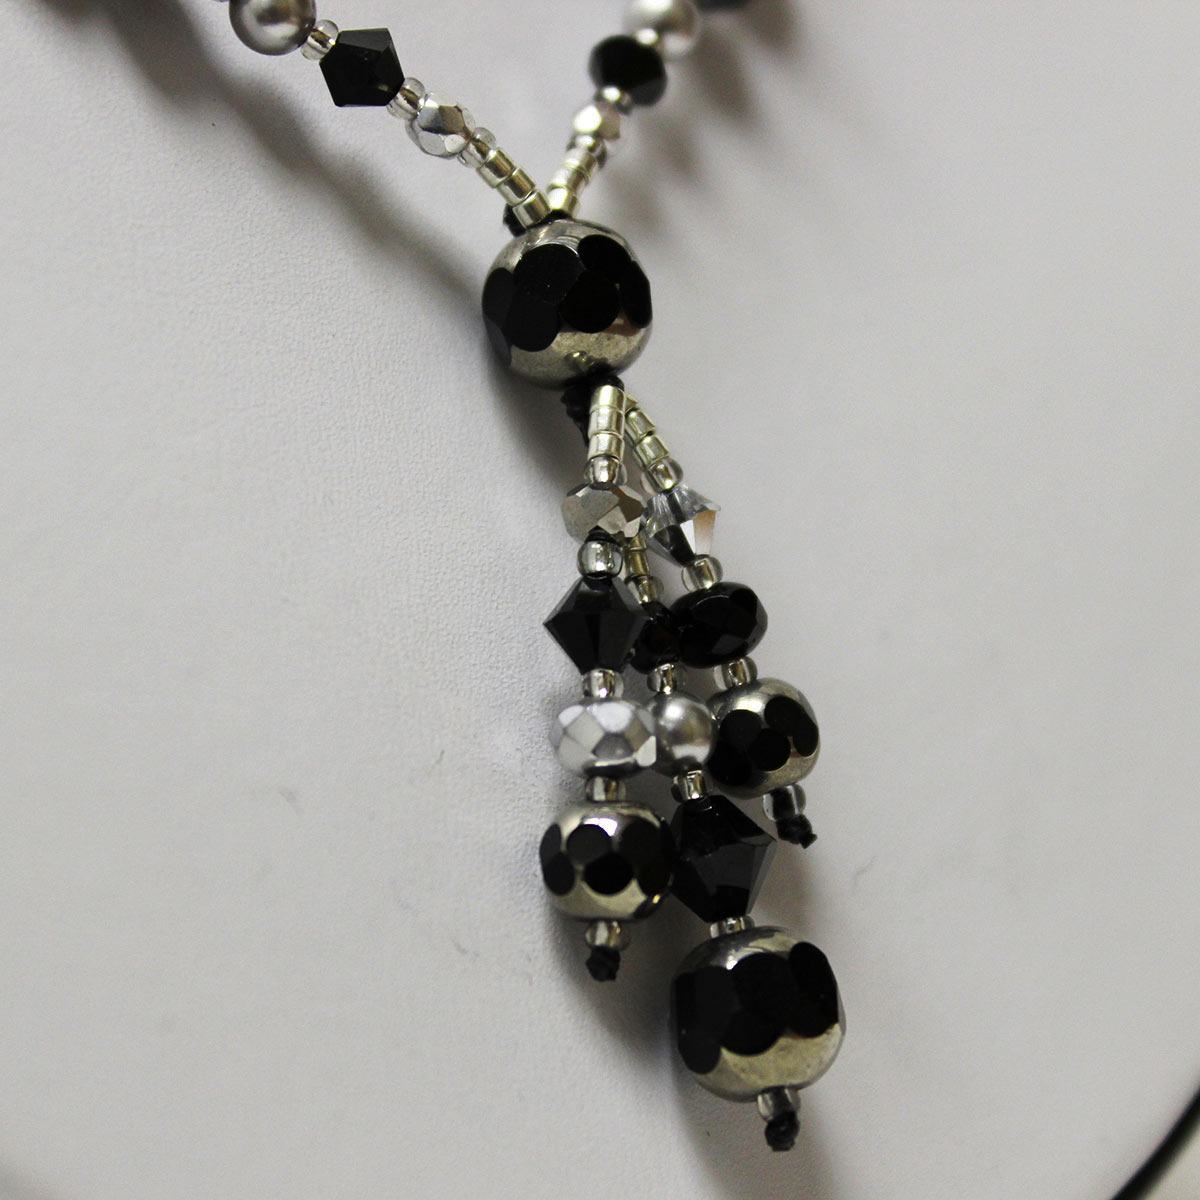 drop necklace, handmade pearl necklace, cathedral beads, crystal beads, black and silver necklace